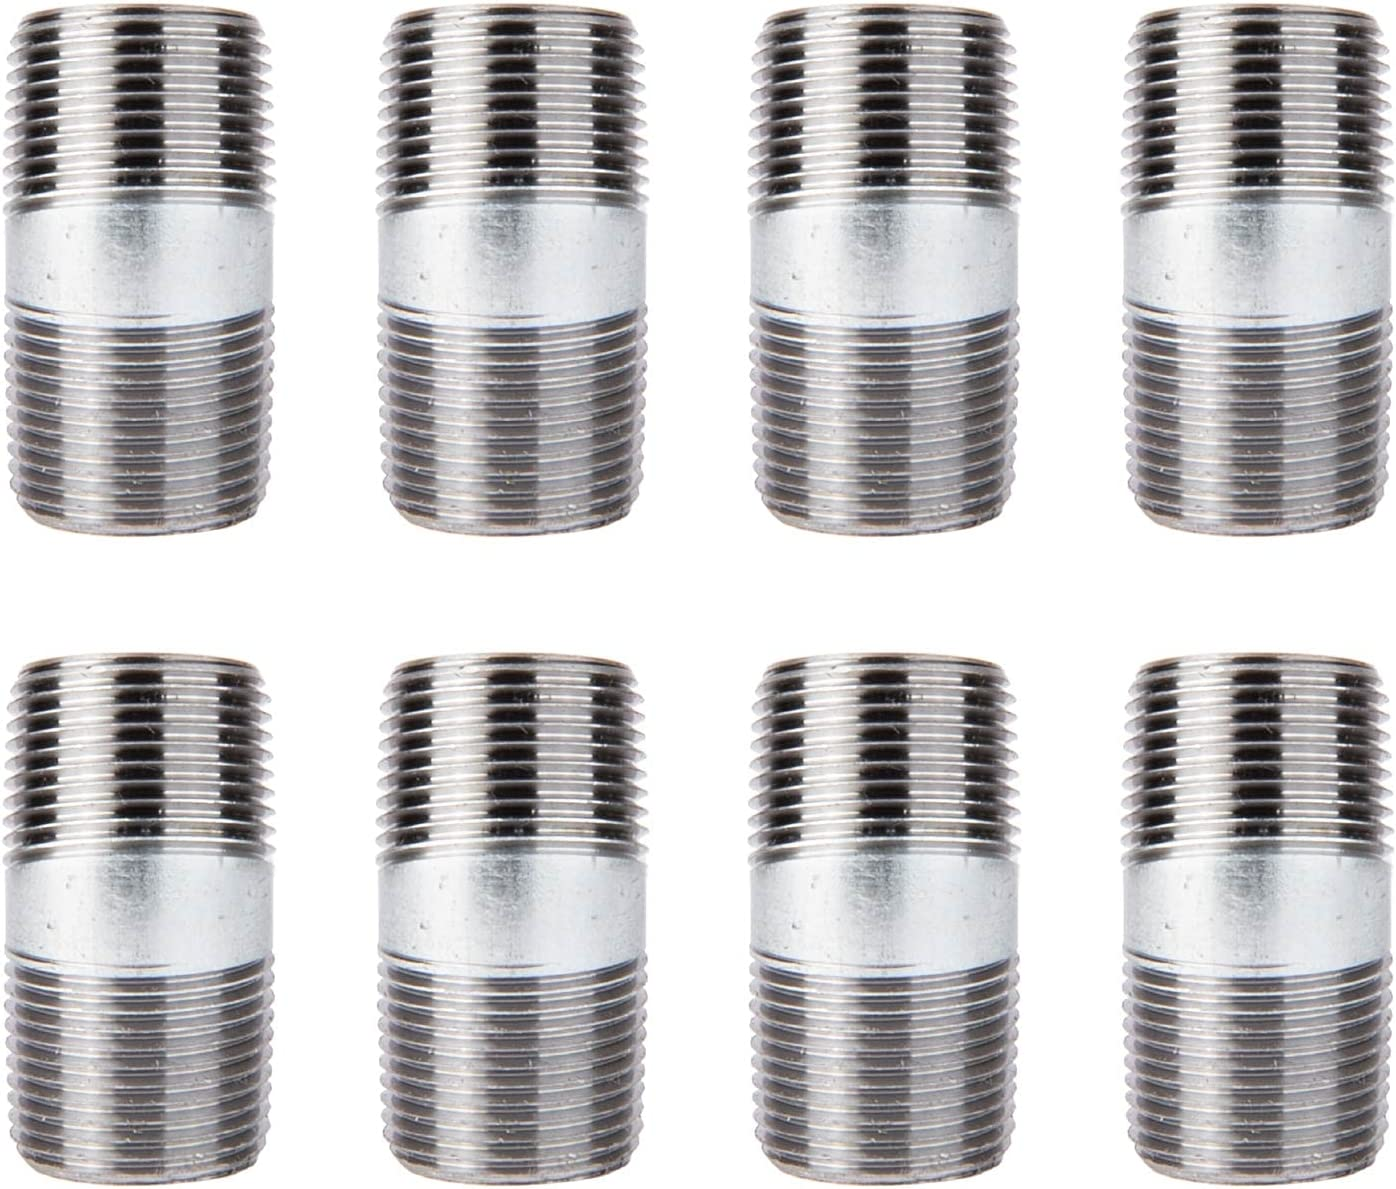 PIPE DÉCOR 3/4 in. x 2 in. Galvanized Steel Pipe, Pre-Cut, for DIY Furniture Building and Regular Plumbing Applications, 8 Pack : Industrial & Scientific